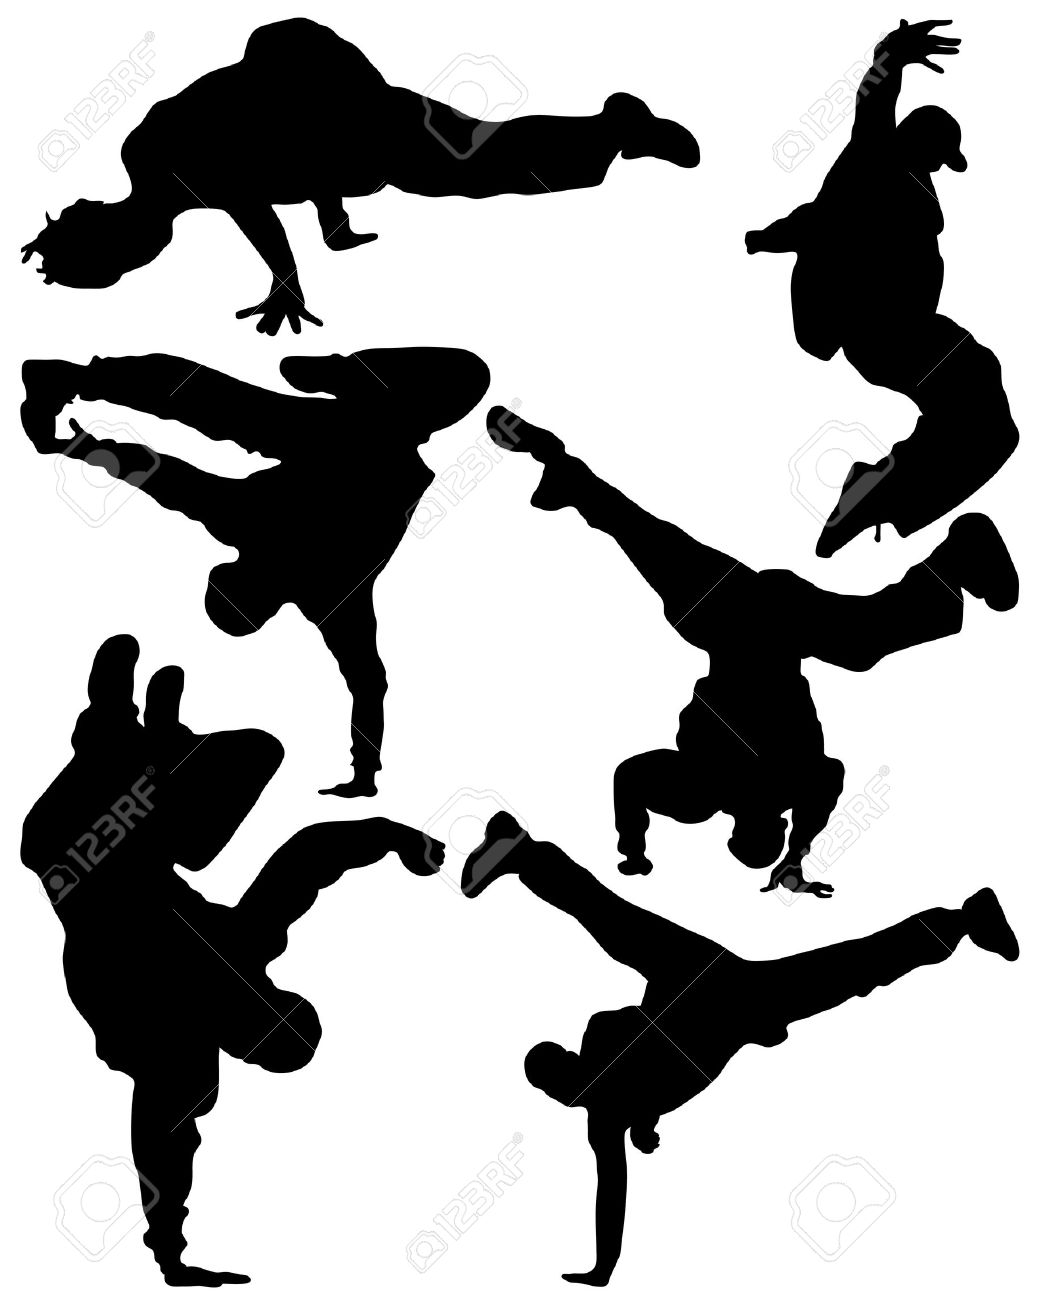 Silhouette of sequence of hip hop dancer, vector - 25435162